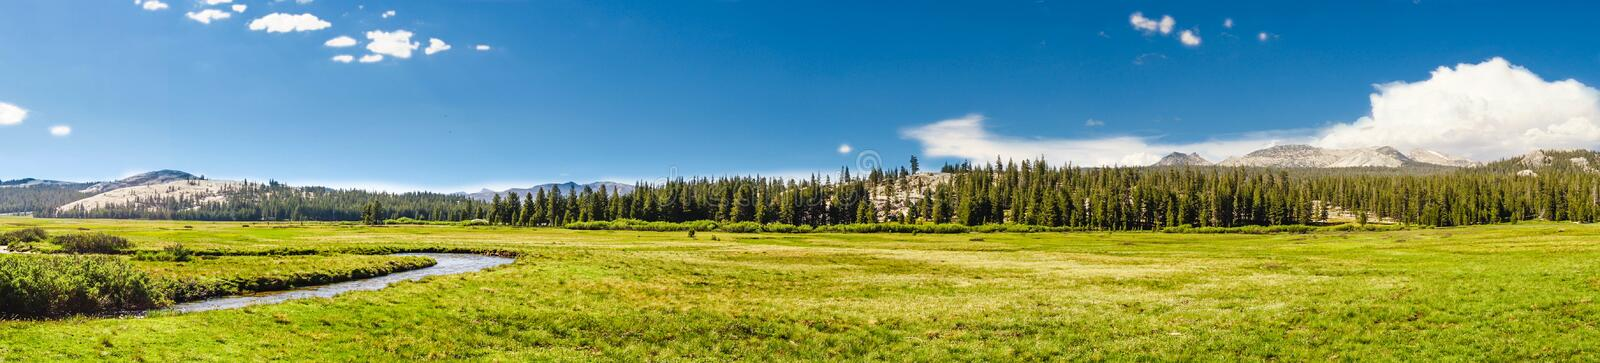 Clouds forming in Yosemite Park stock images